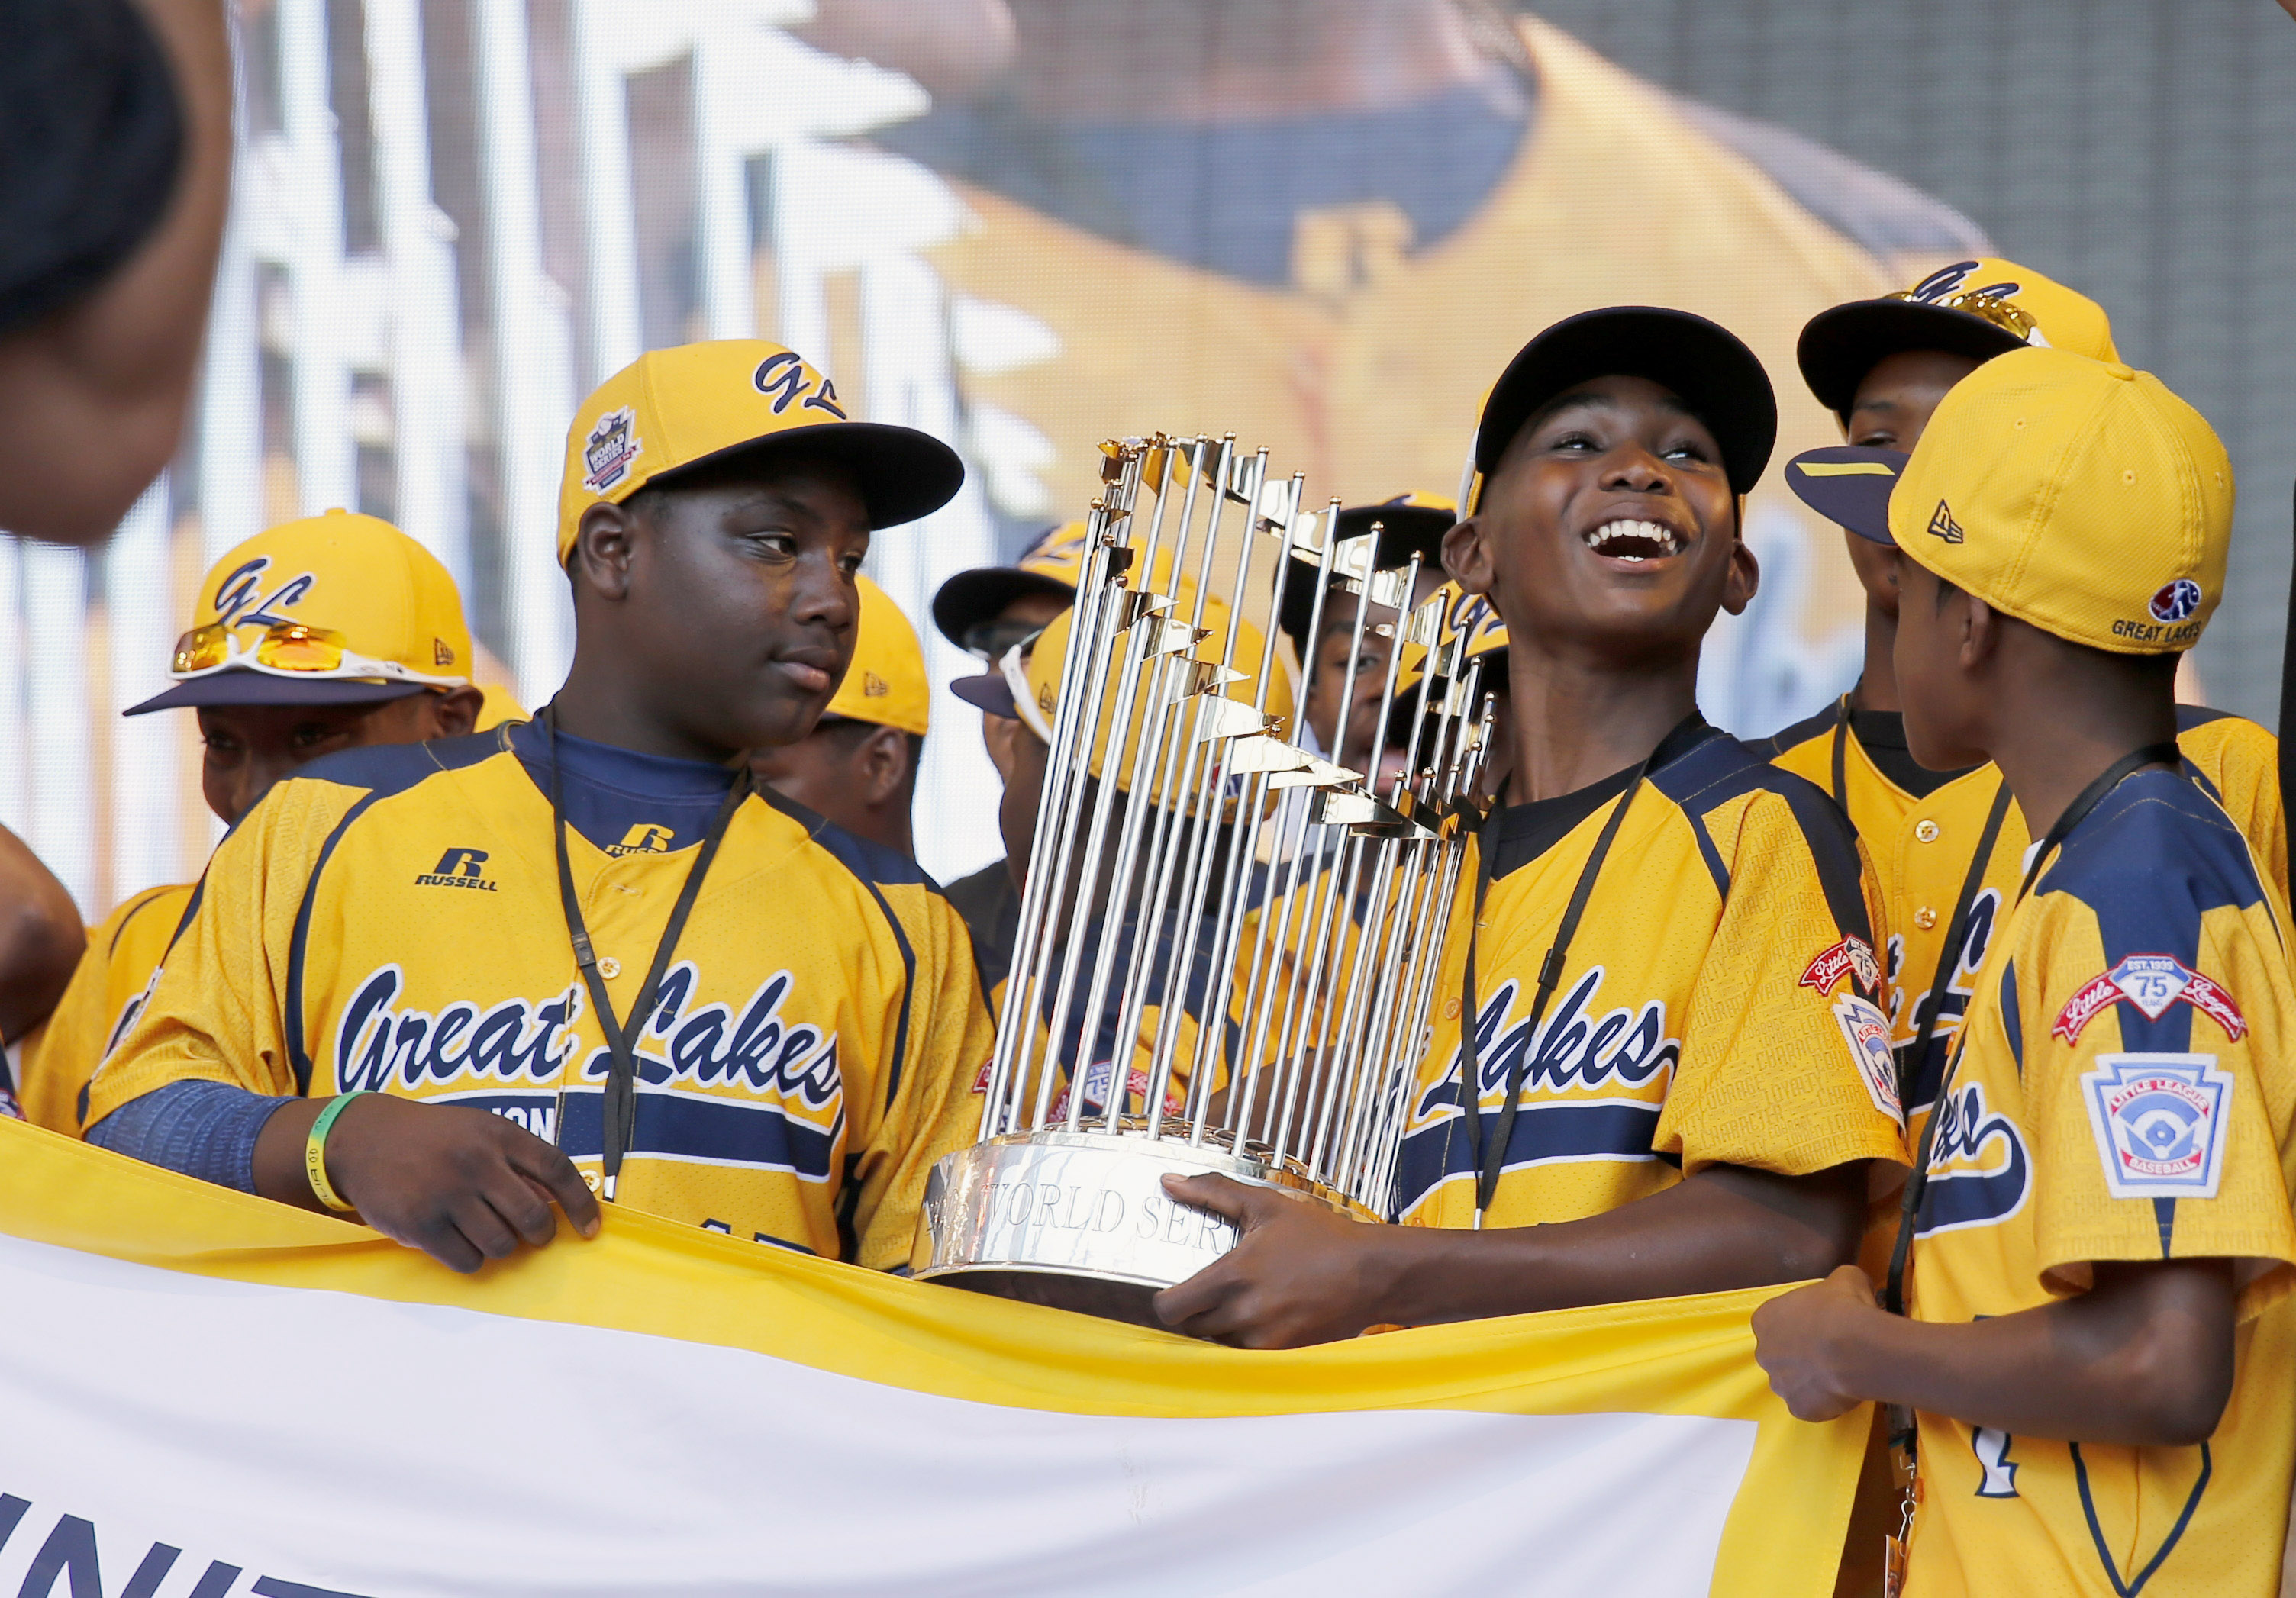 Members of the Jackie Robinson West Little League baseball team participate in a rally in Chicago celebrating the team's U.S. Little League Championship. on Aug. 27, 2014.